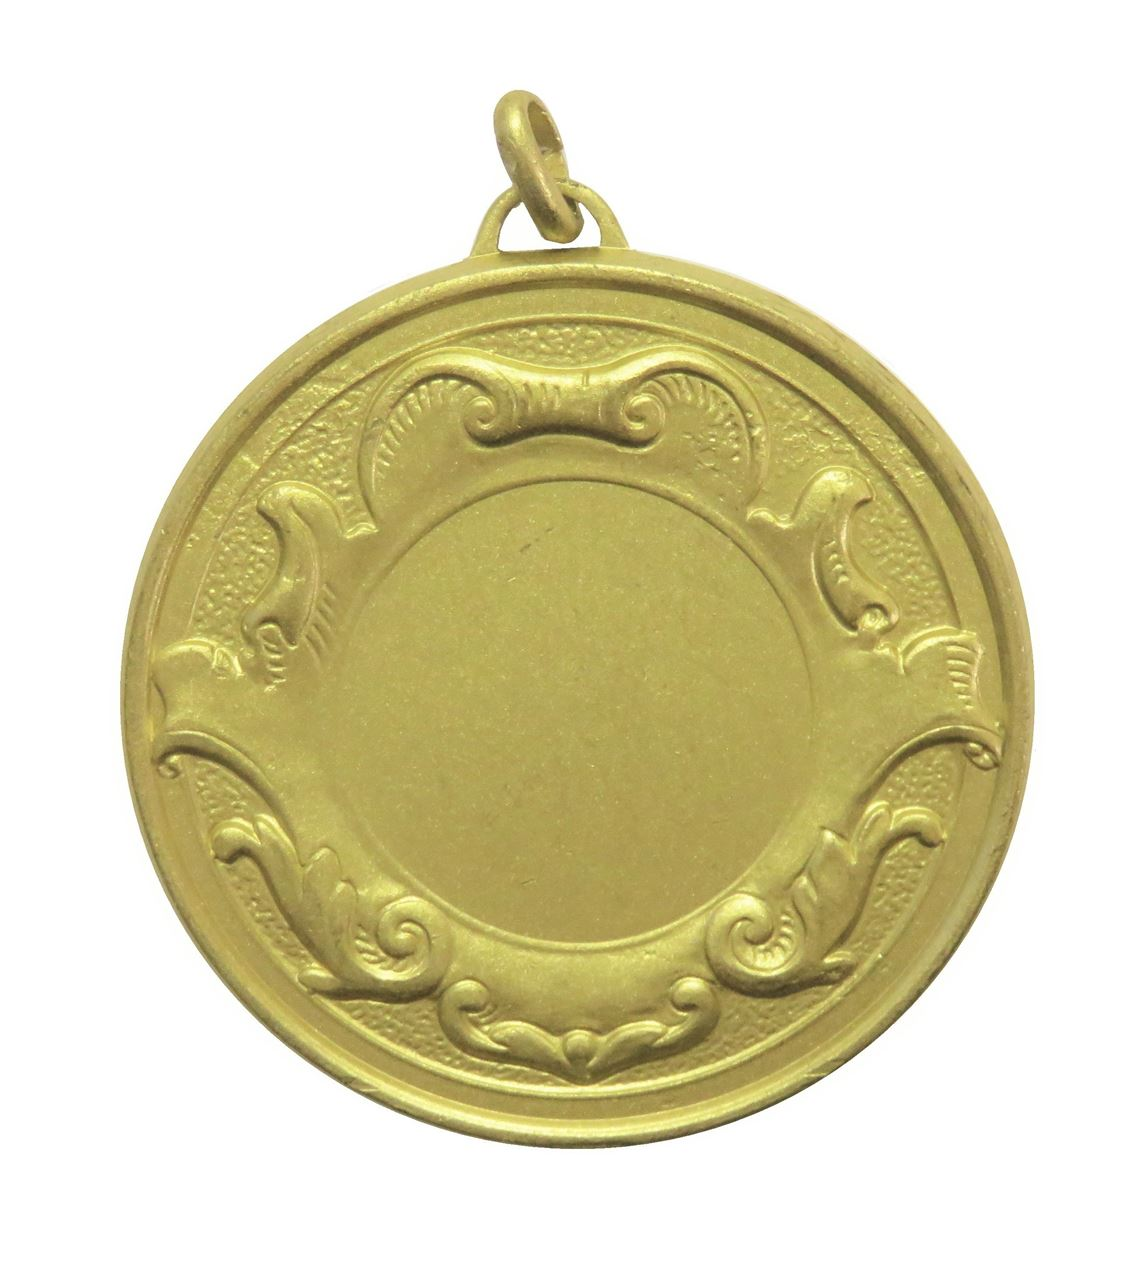 Gold Quality Royal Medal (size: 50mm) - 6005E